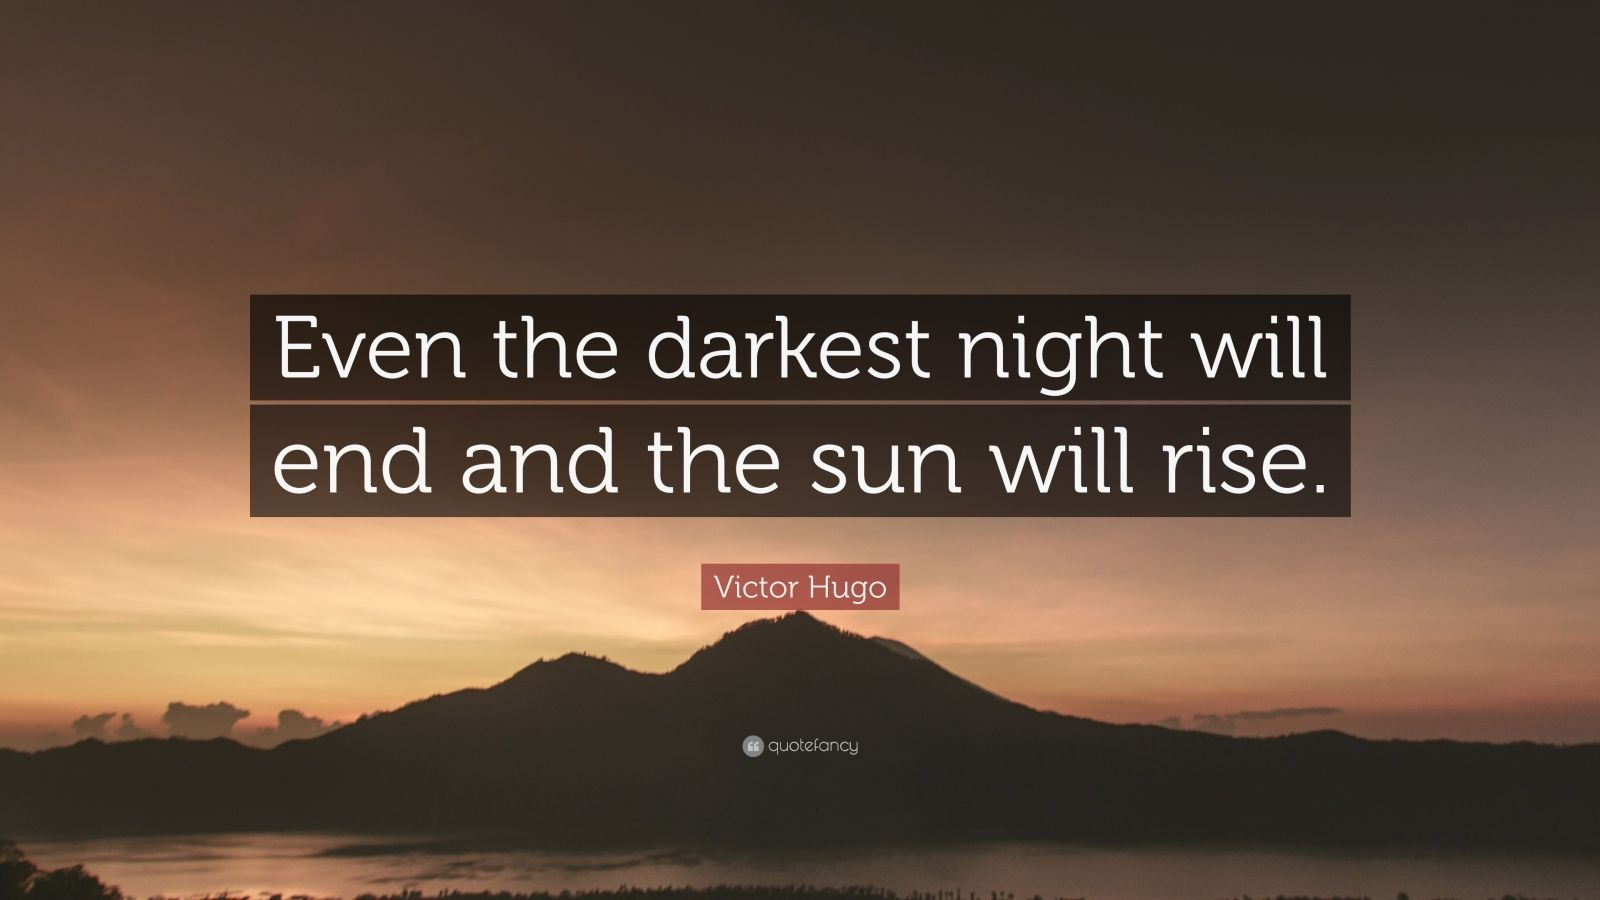 Wallpaper Writing Quotes Victor Hugo Quote Even The Darkest Night Will End And